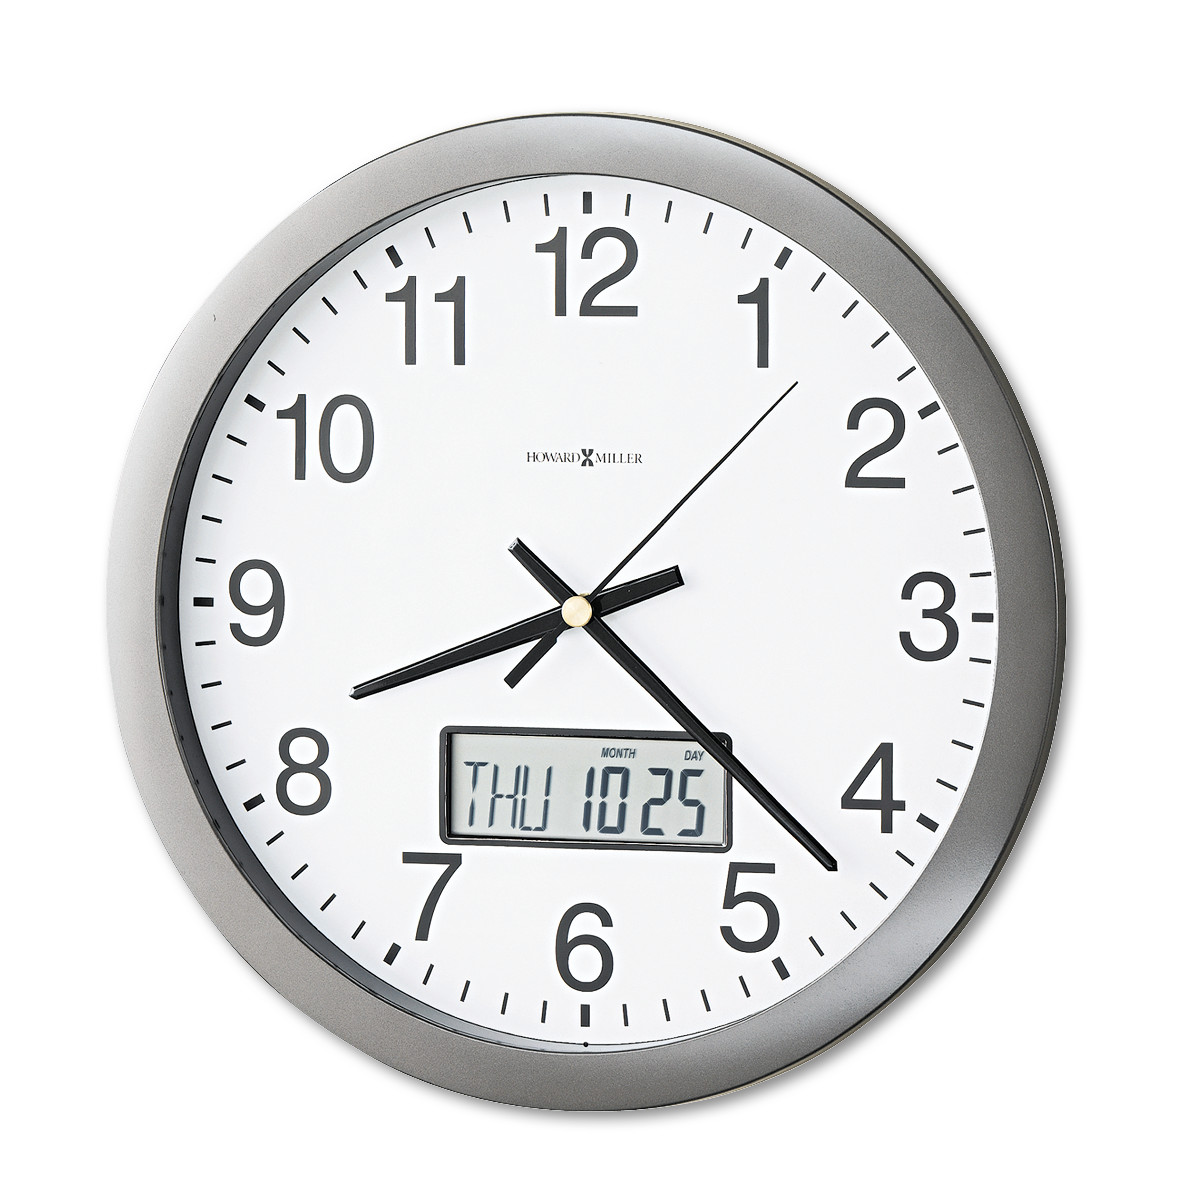 Howard Miller Chronicle Wall Clock with LCD Inset, 14\ by HOWARD MILLER CLOCK CO.